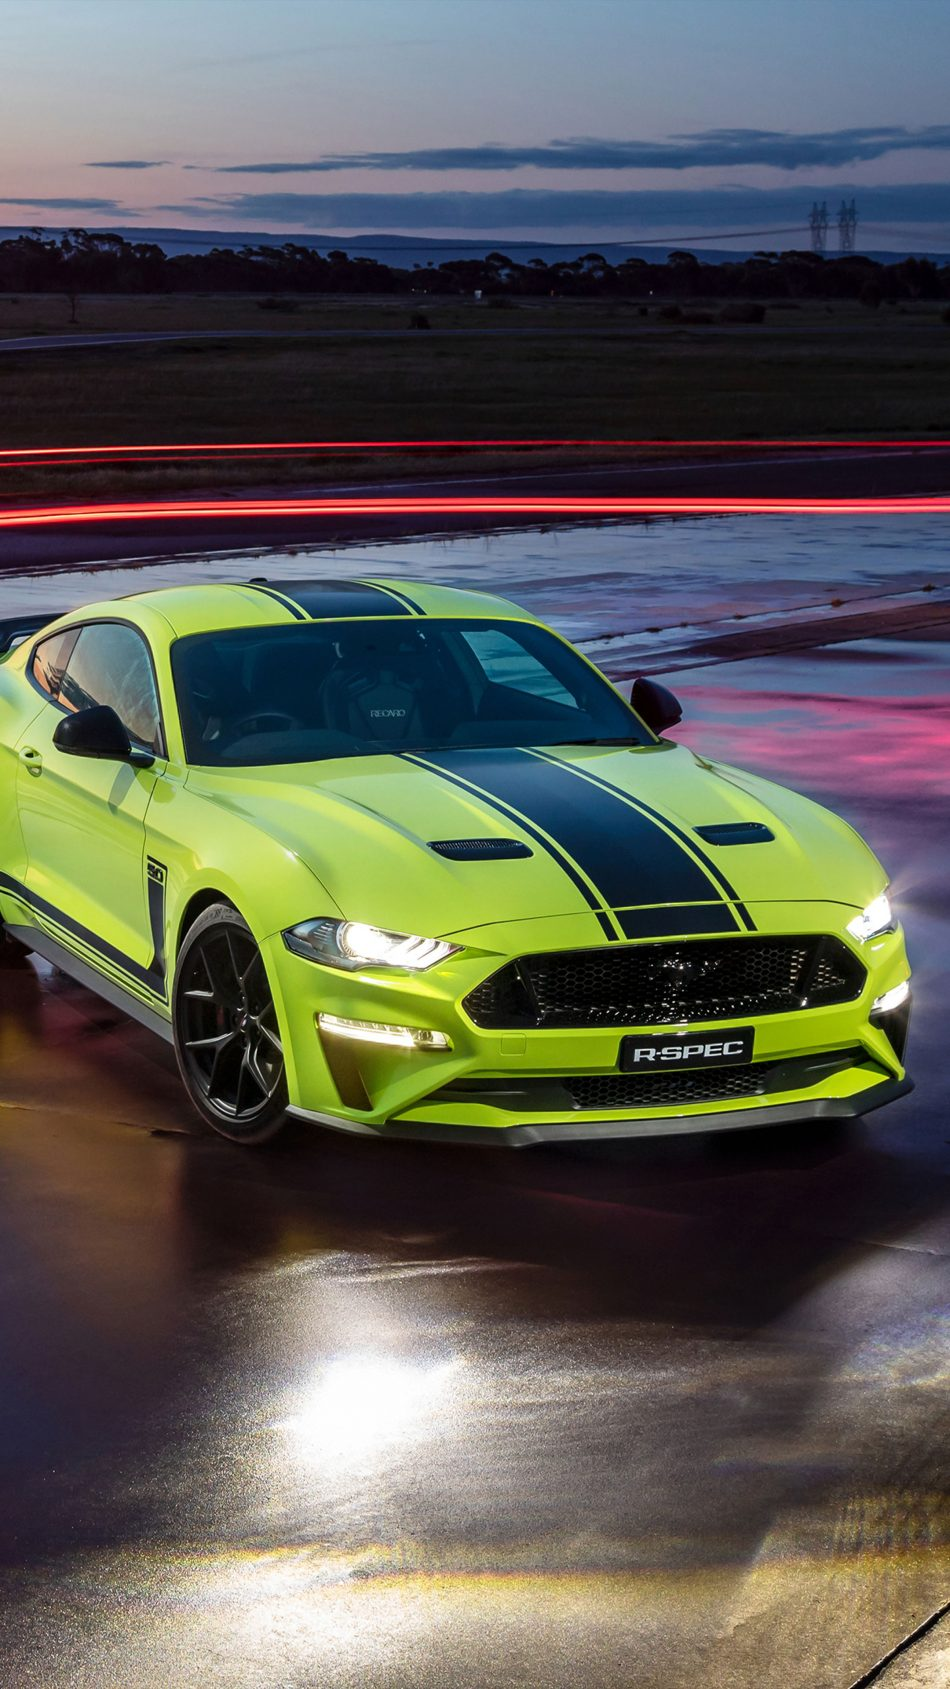 Ford Mustang GT Fastback R-SPEC 2019 4K Ultra HD Mobile Wallpaper